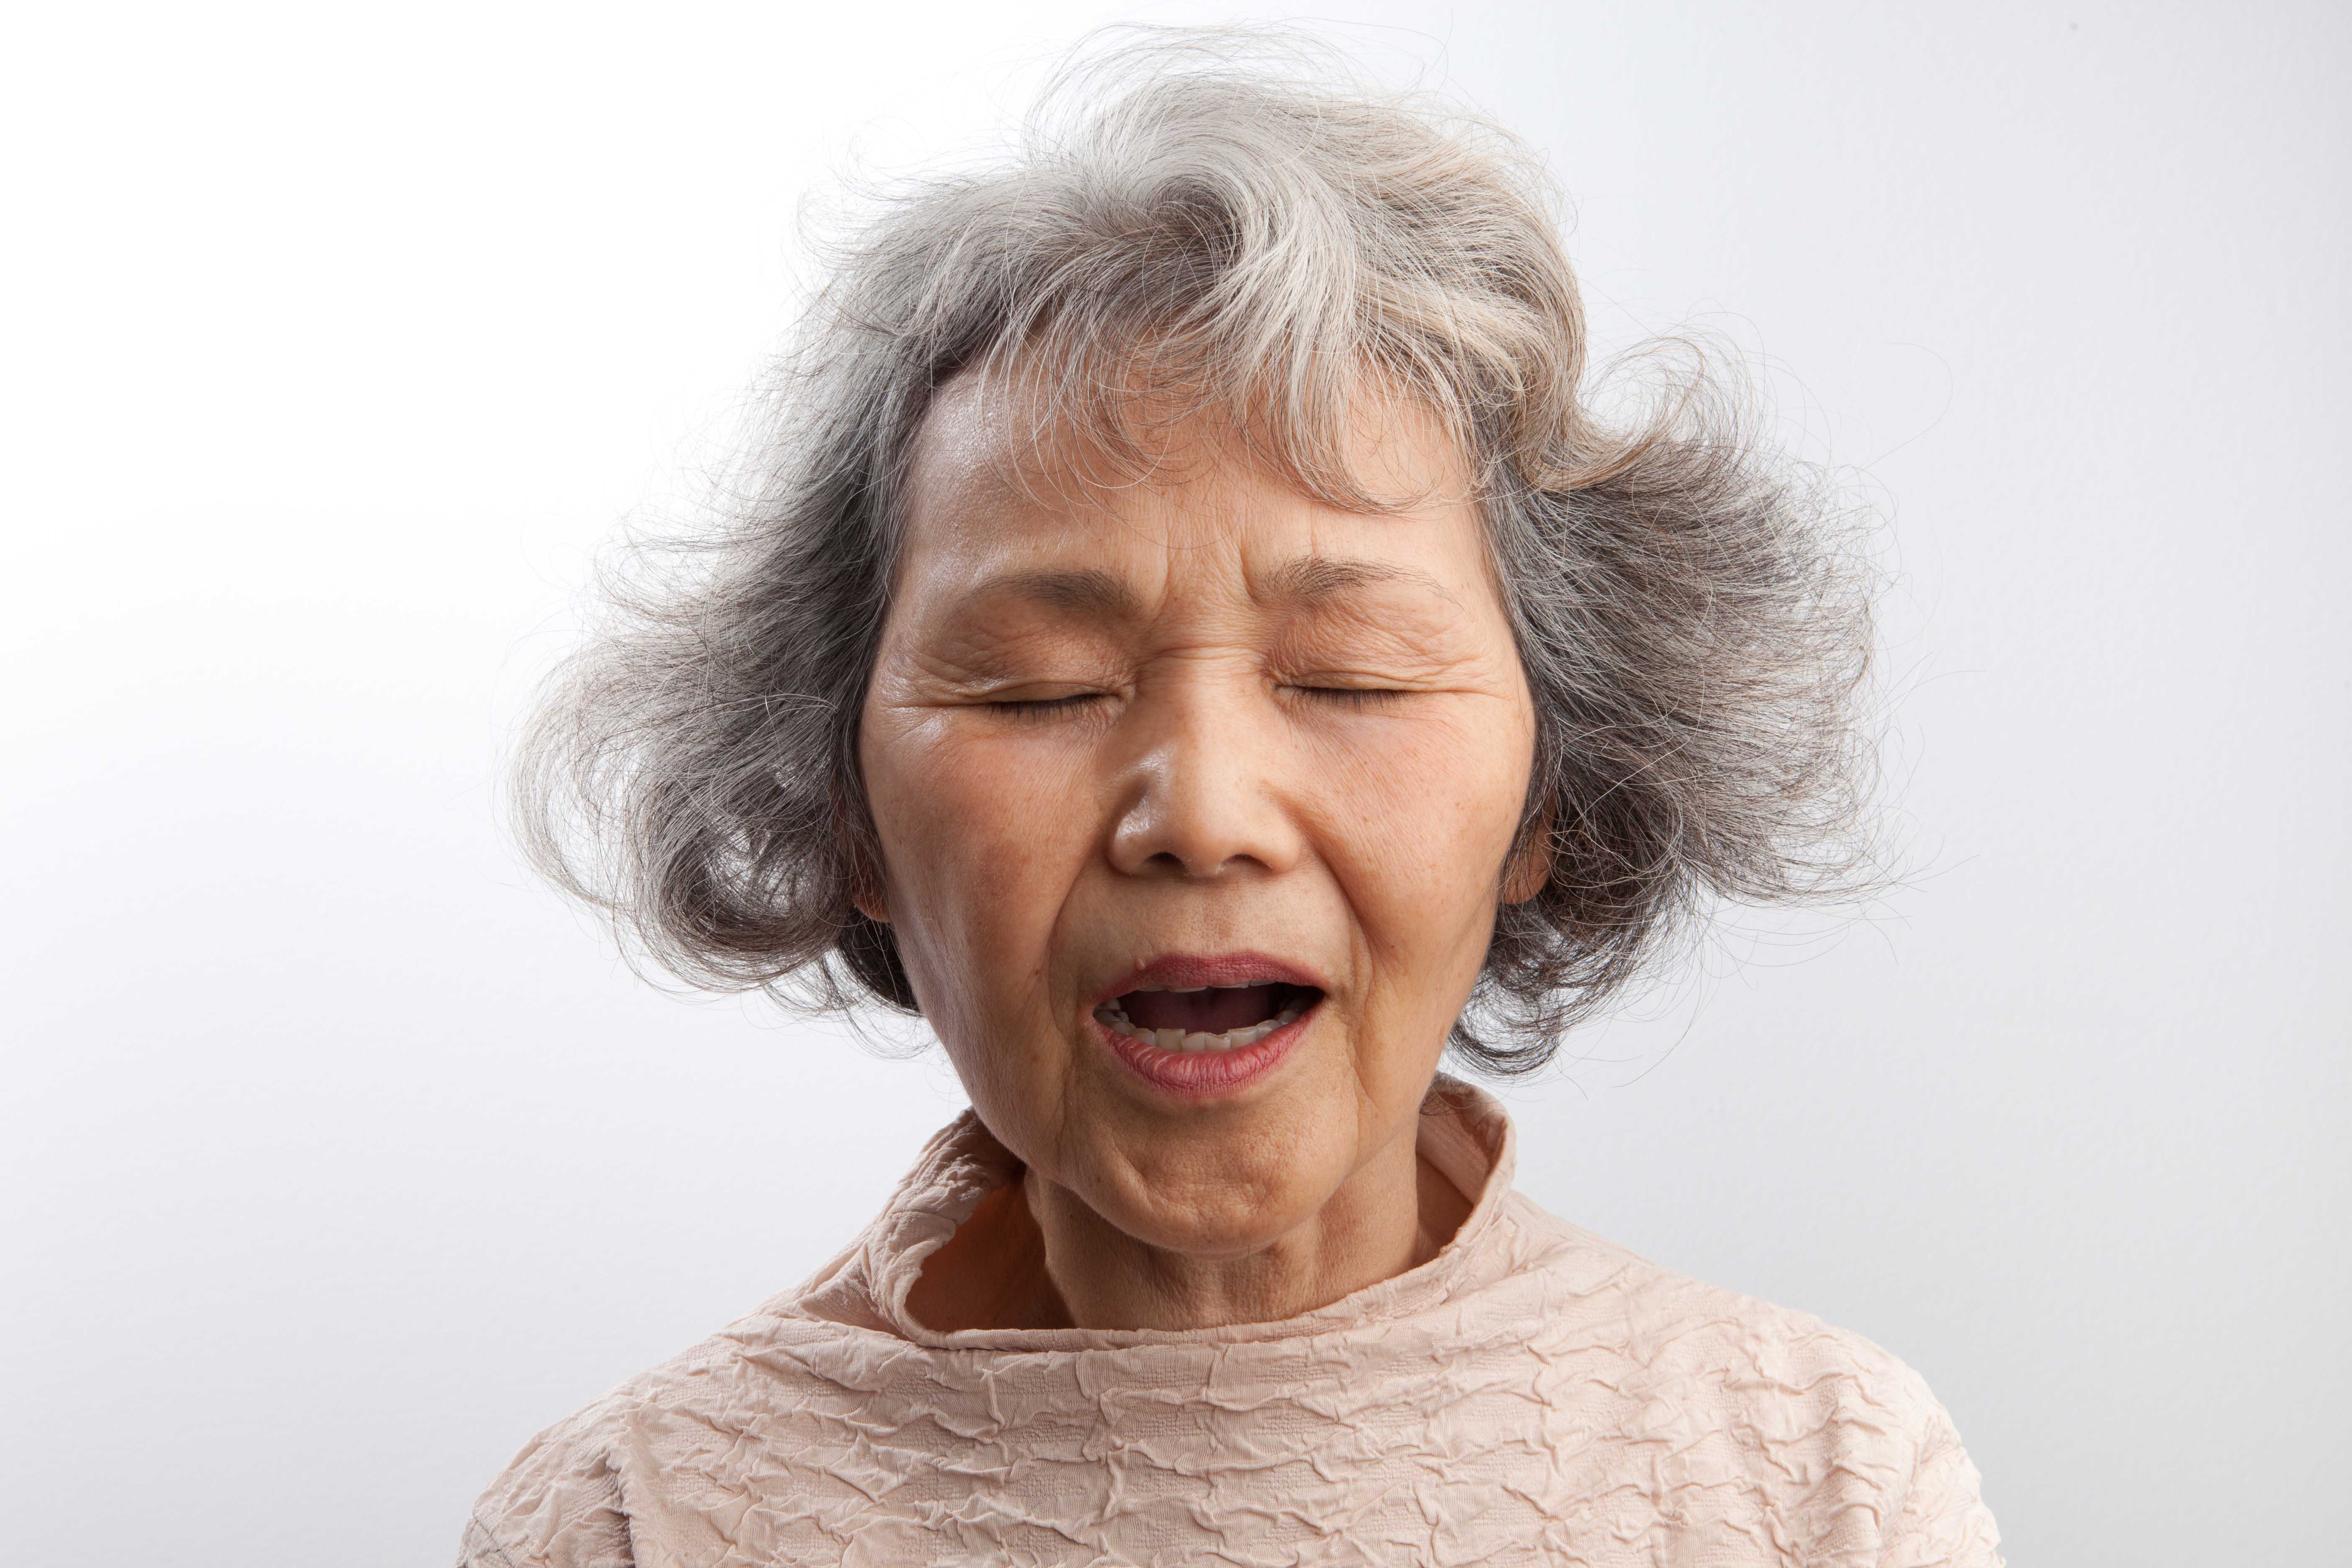 Older Asian woman with short gray hair with eyes closed and lips open